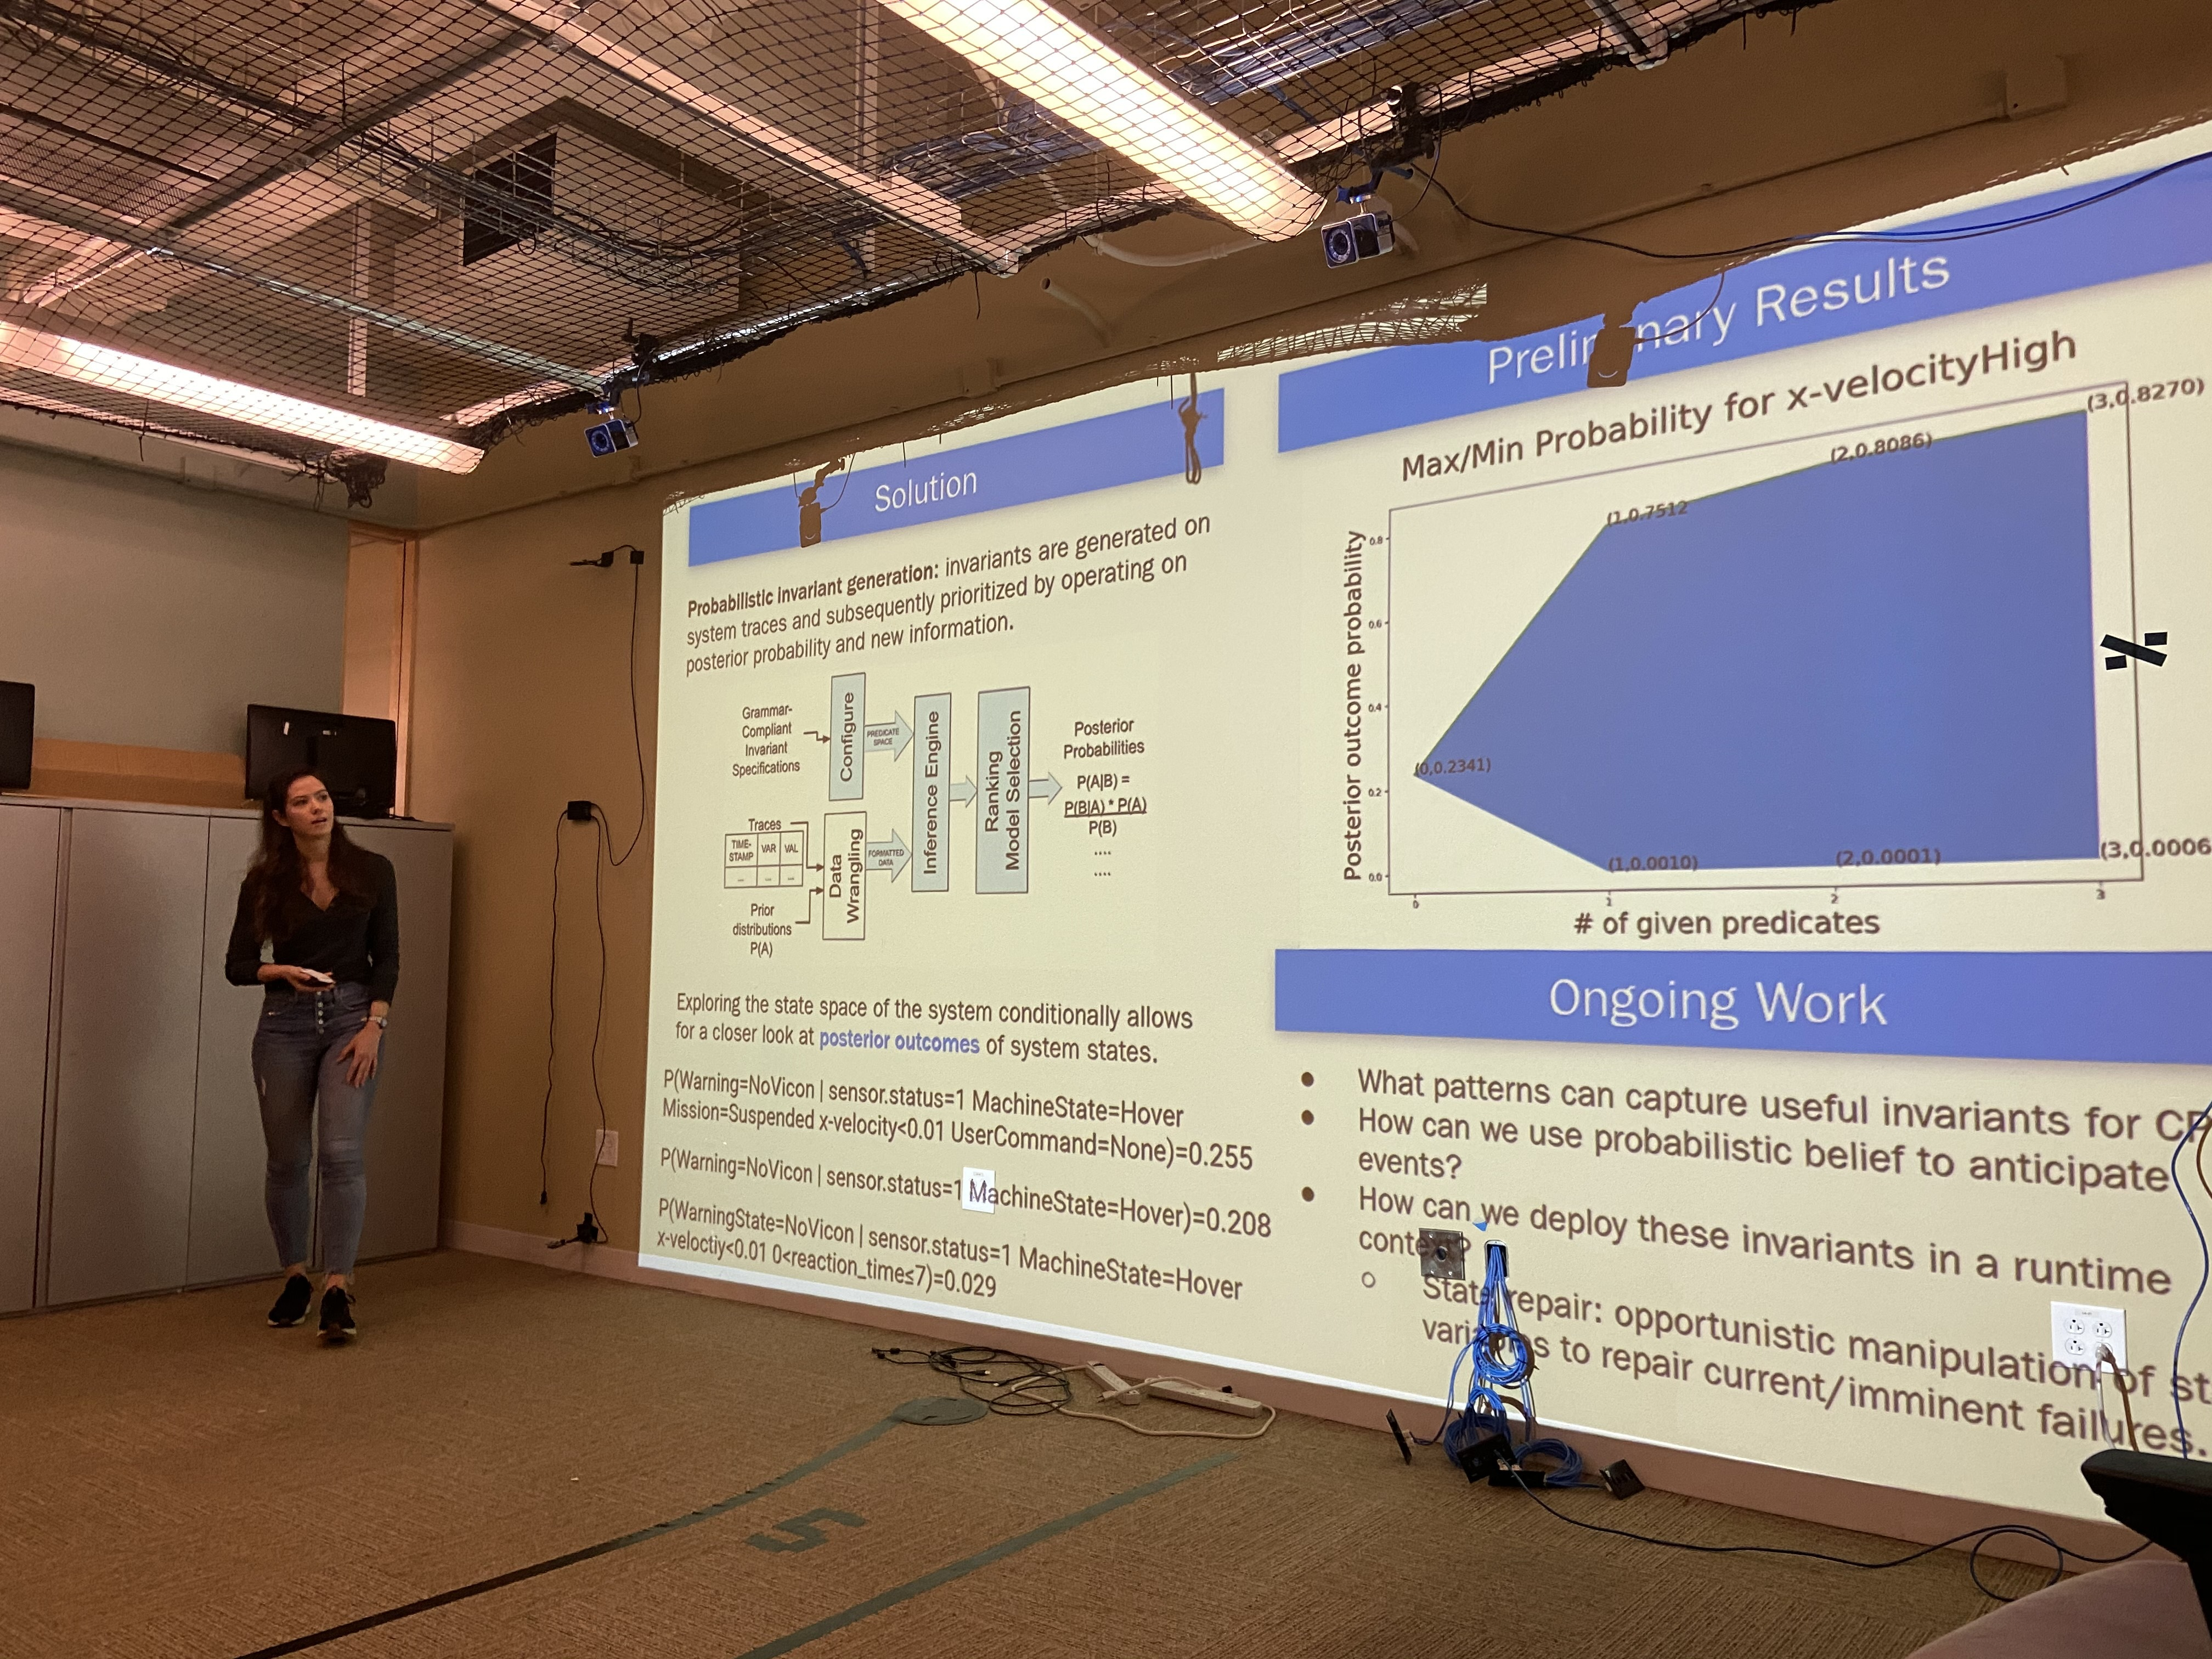 Meriel giving a talk on her current work on invariance.